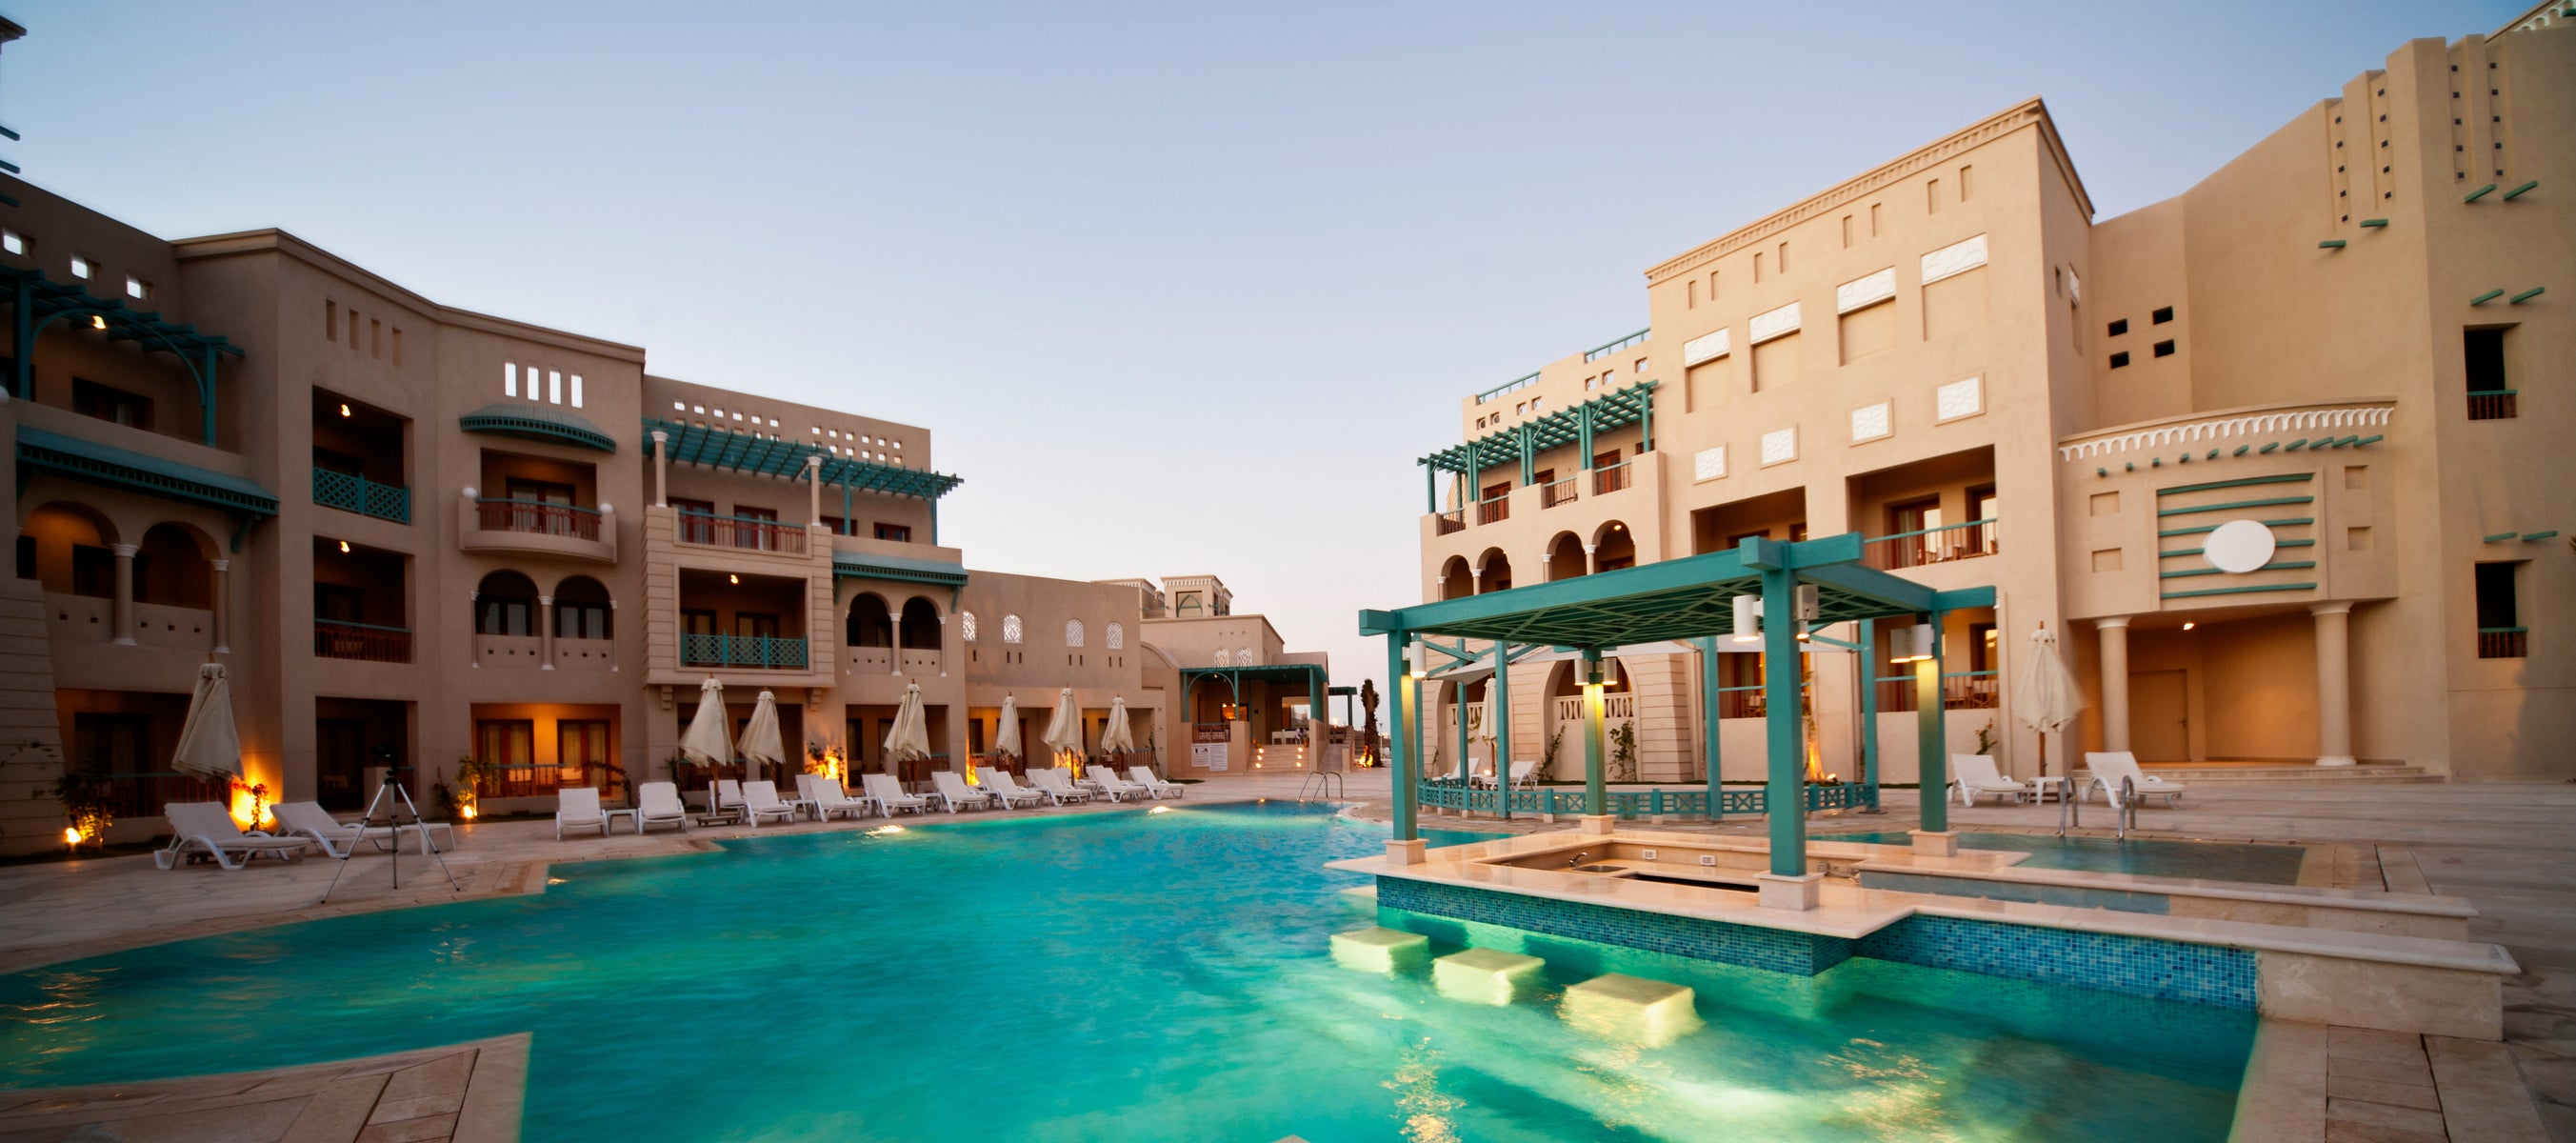 Mosaique El Gouna Hotel In Egypt Holidays From 450pp Loveholidays